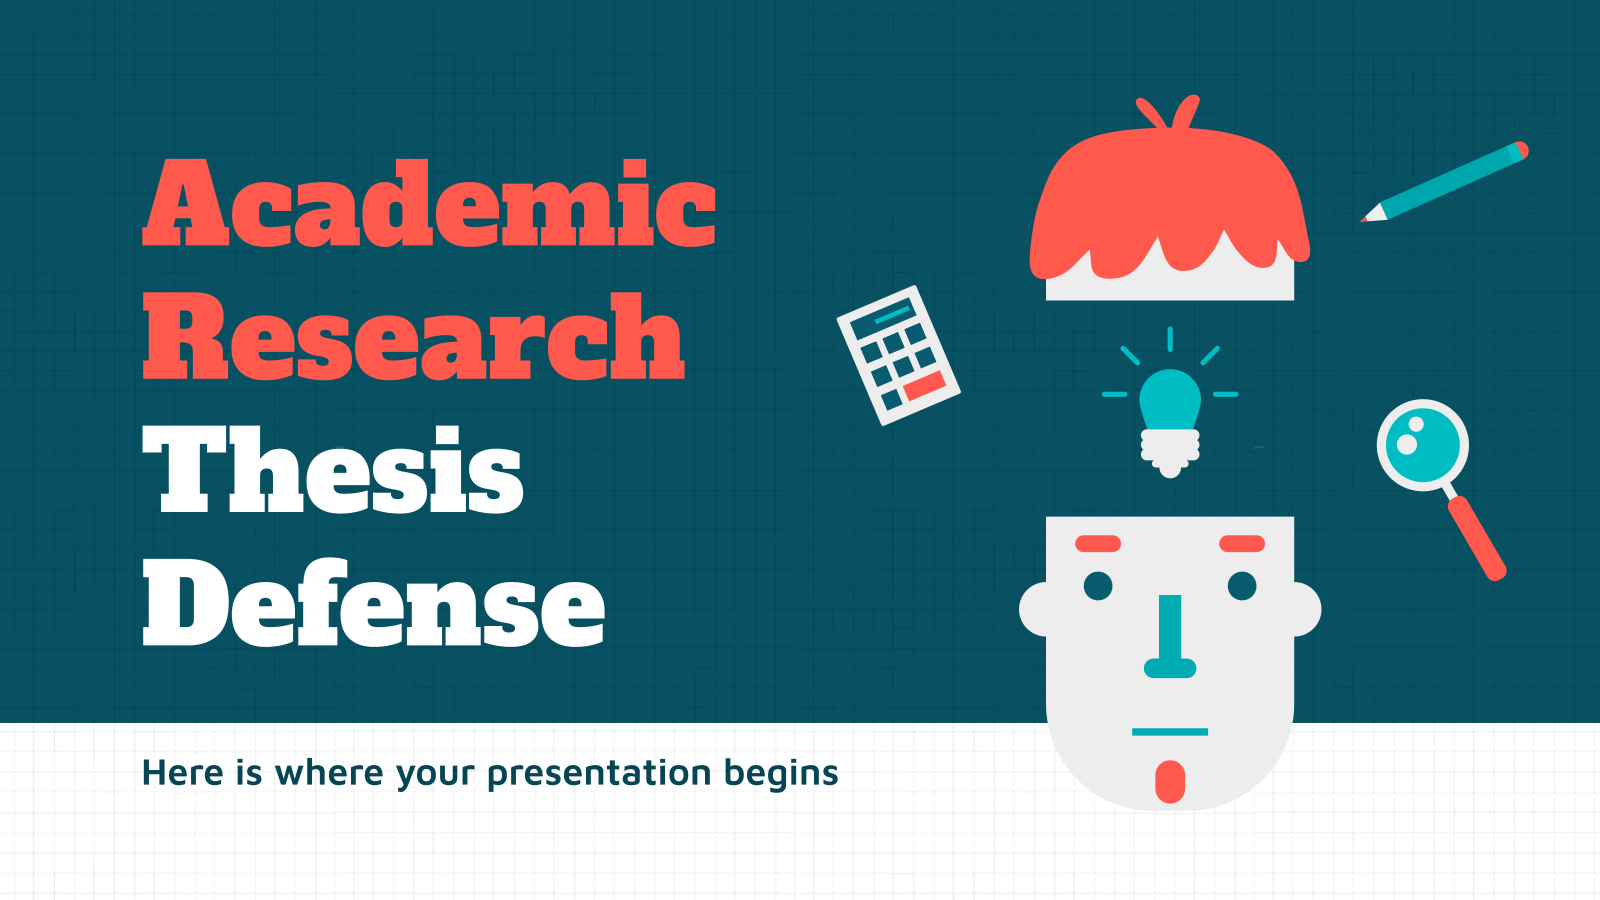 Academic Research Thesis Defense presentation template